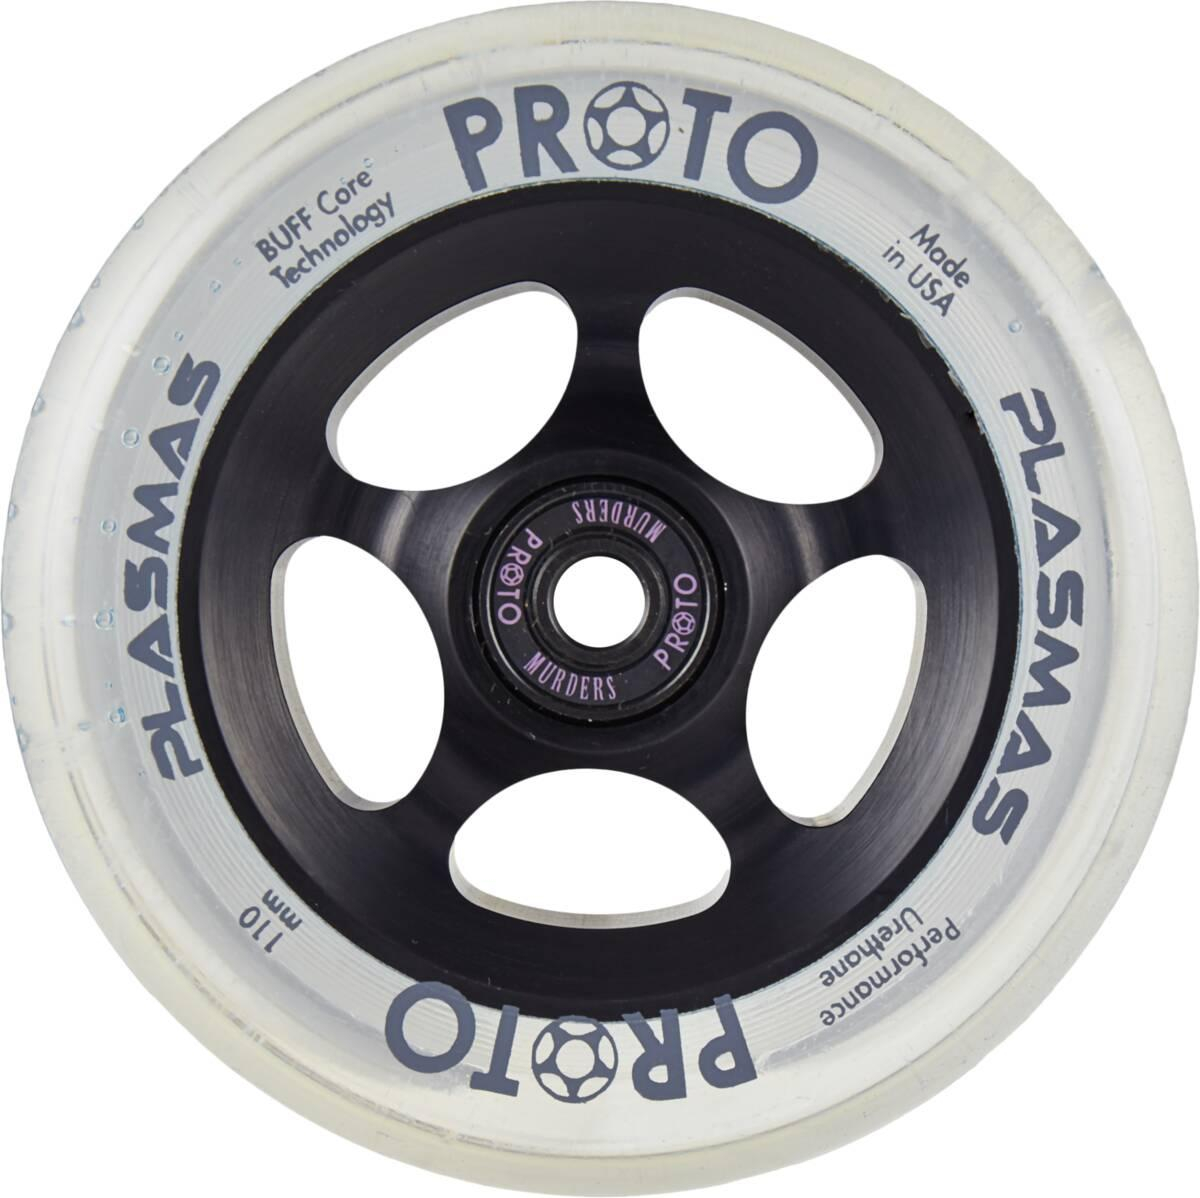 Proto Plasma Pro Scooter Wheels 2-Pack